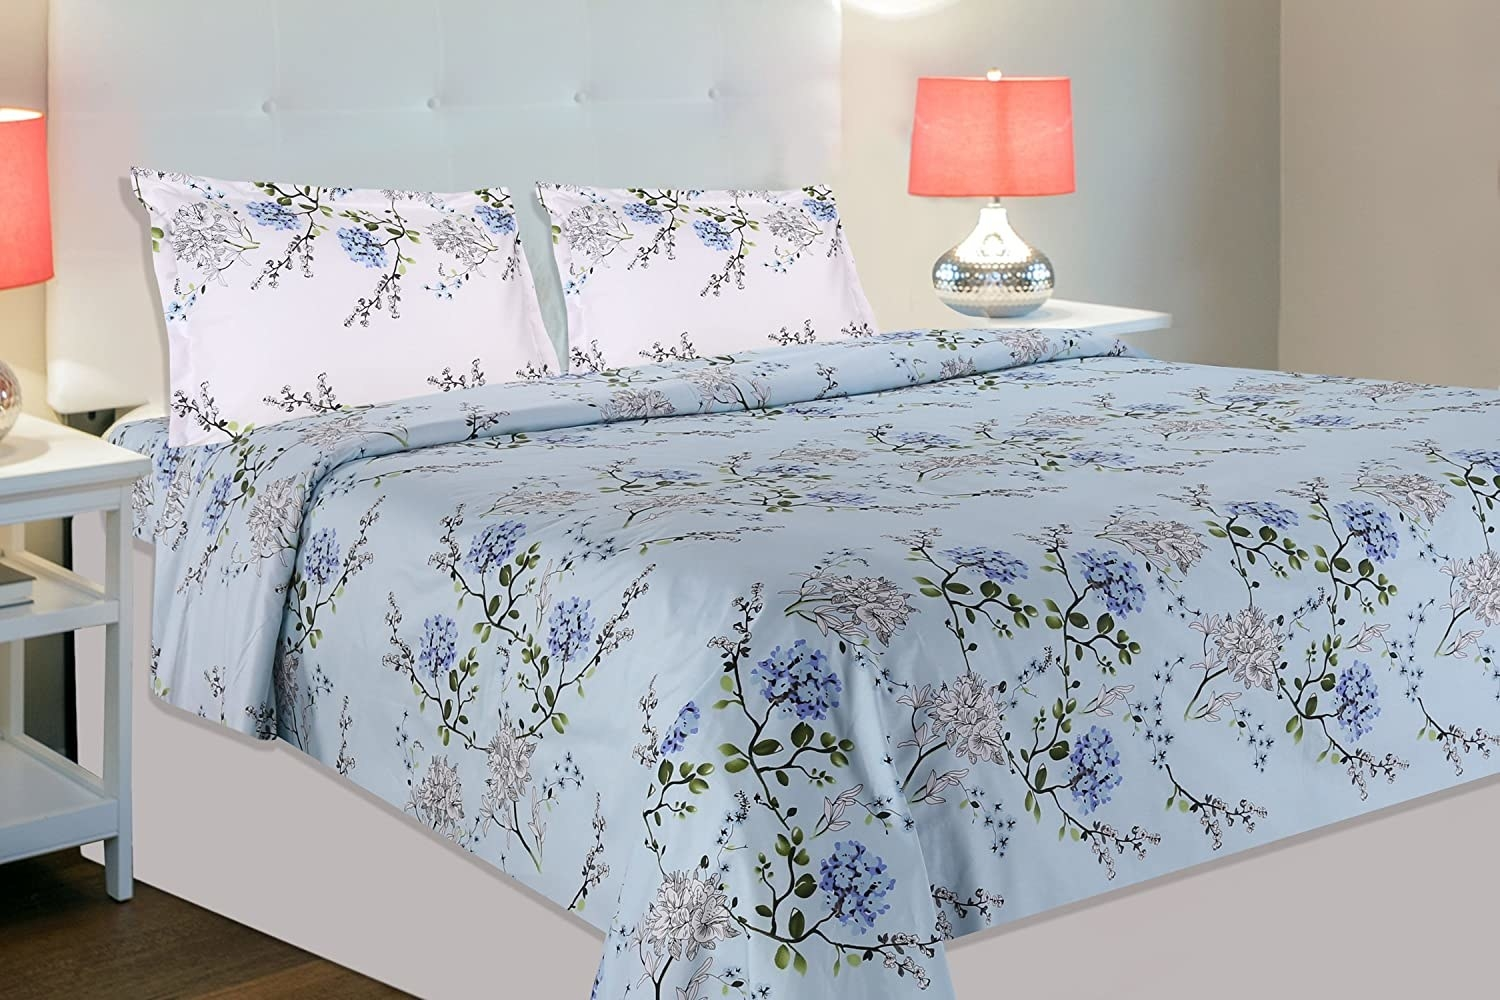 A blue and white floral bedsheet